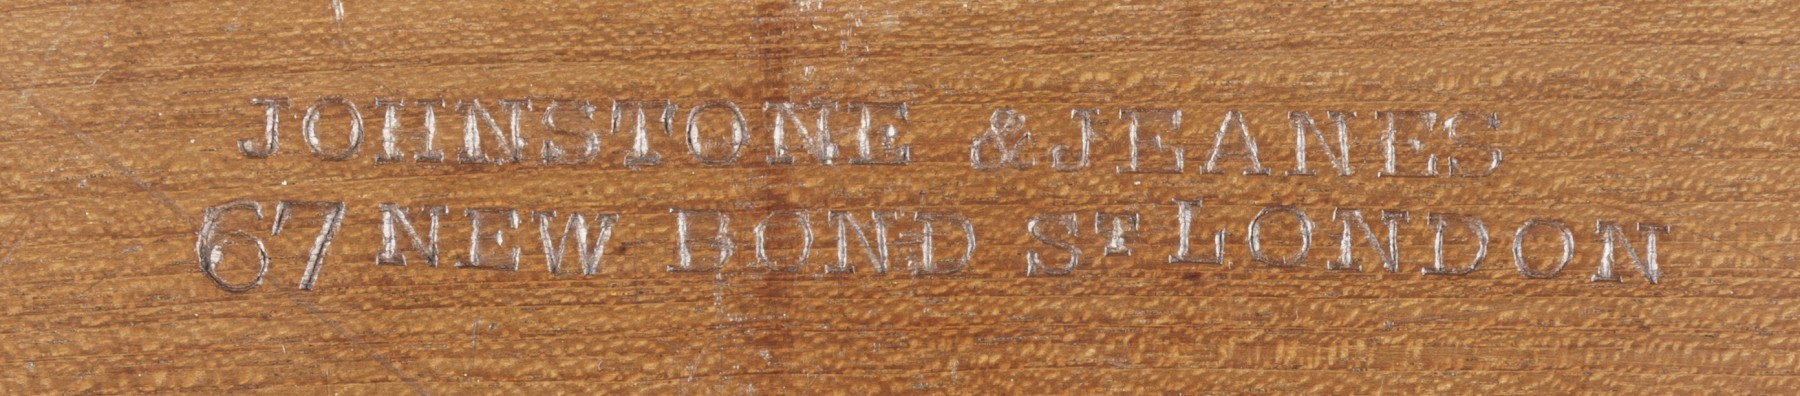 9139 Octagonal centre Table by Johnstone & Jeanes stamp